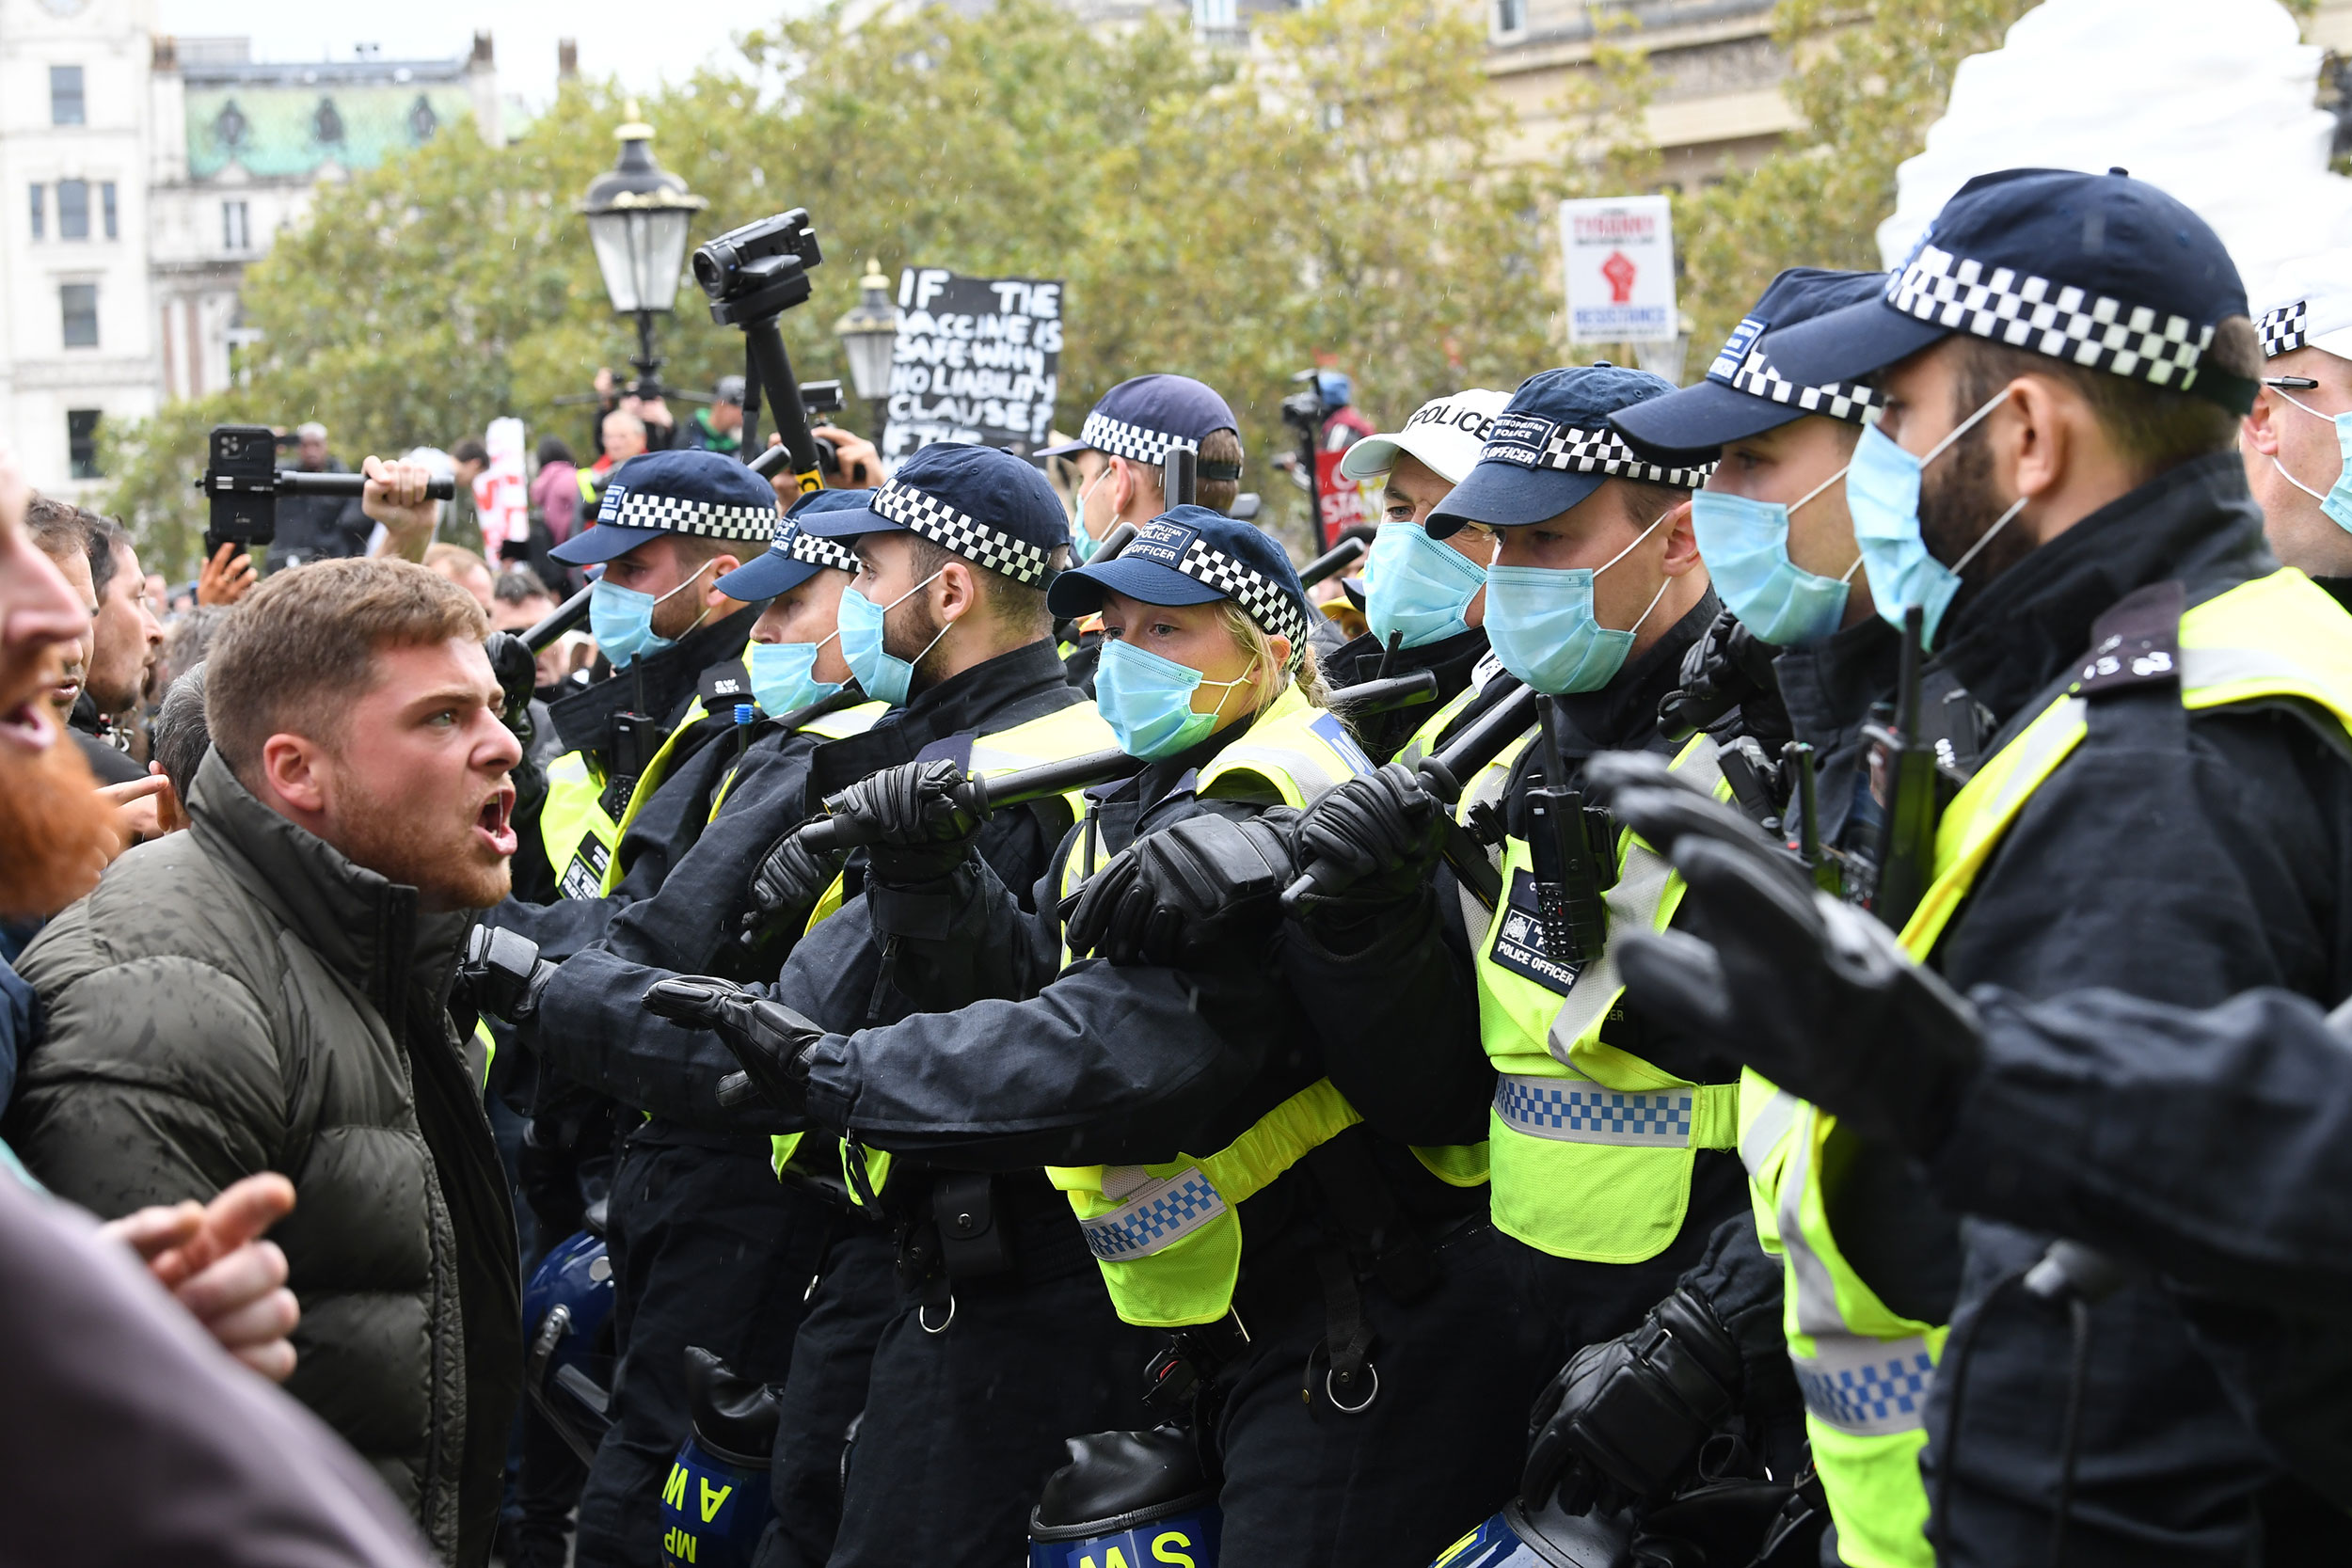 Police interact with demonstrators at an anti-lockdown protest at Trafalgar Square on September 26 in London.